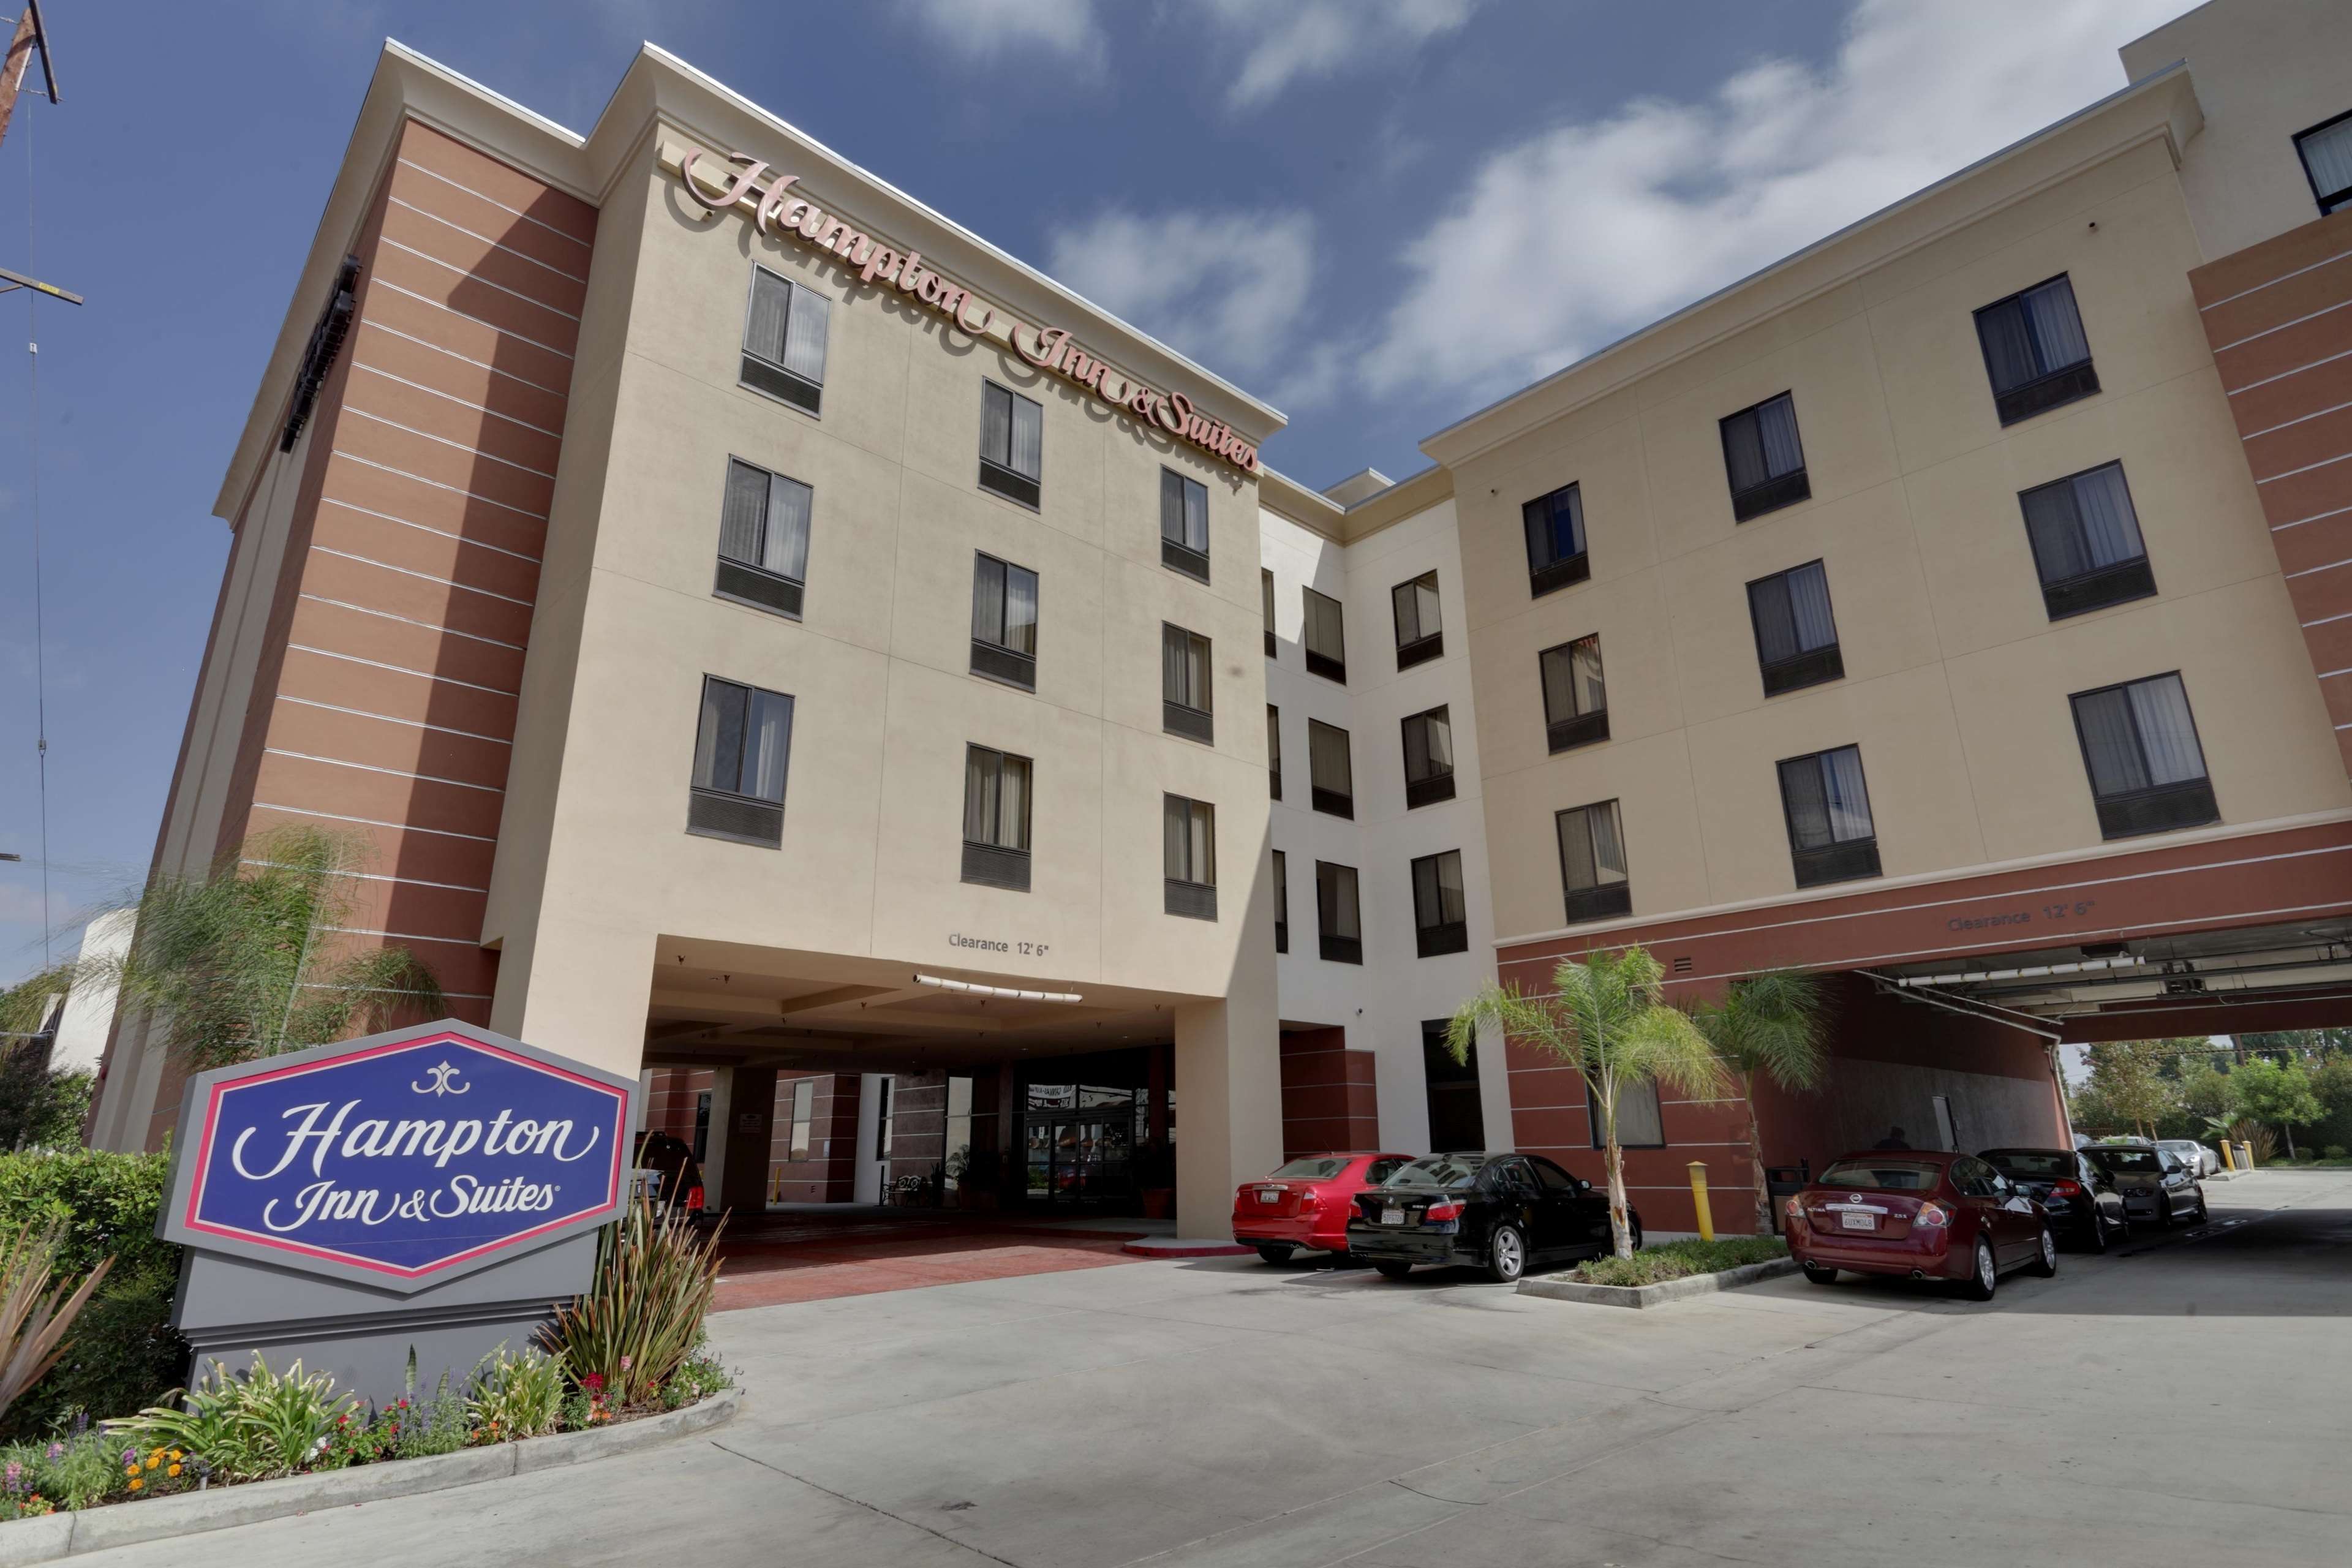 The Sherman Hotel Los Angeles Reviews